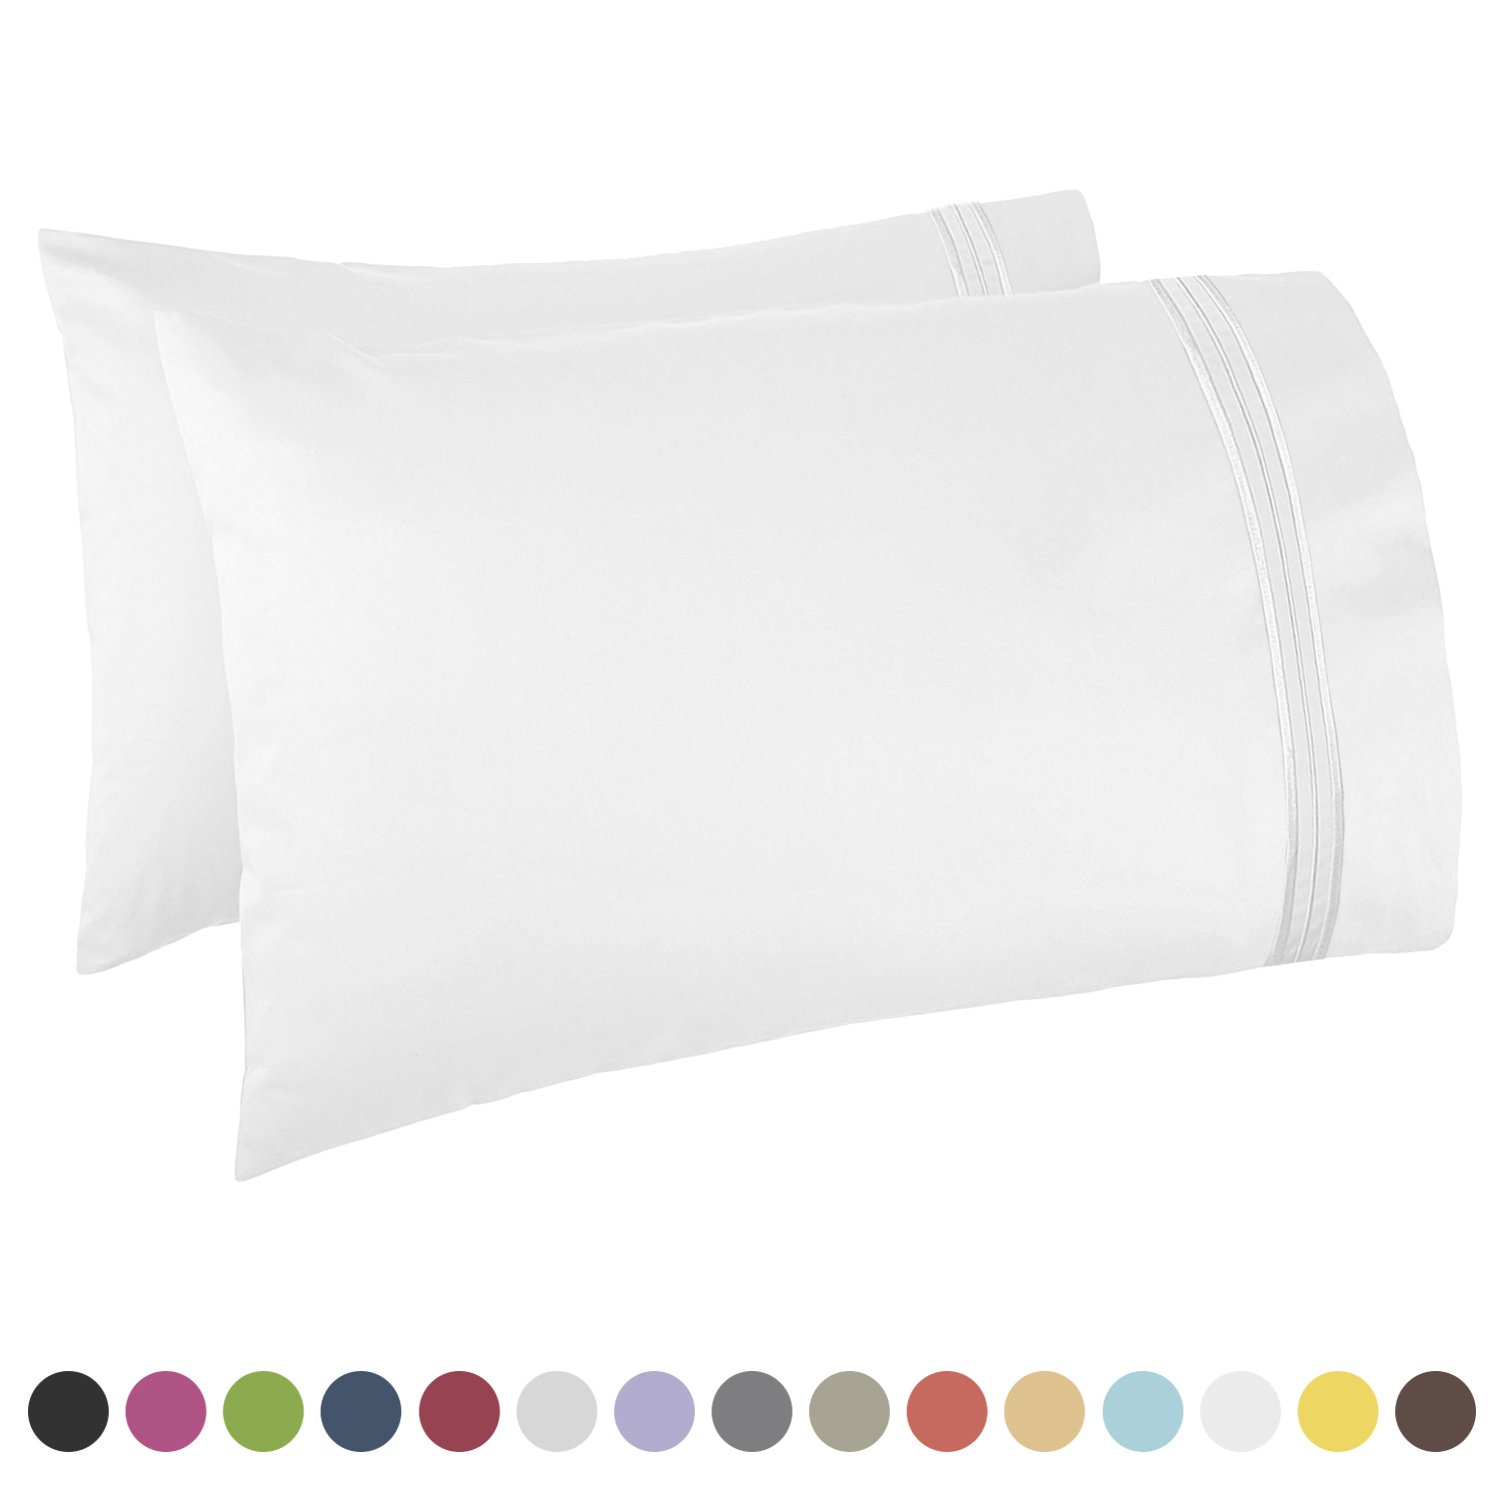 Nestl Bedding Premier 1800 Pillowcase - 100% Luxury Soft Microfiber Pillow Case Sleep Covers - Hypoallergenic Sleeping Encasements - Queen Standard Size (20''x30''), White, Set of 2 Pieces